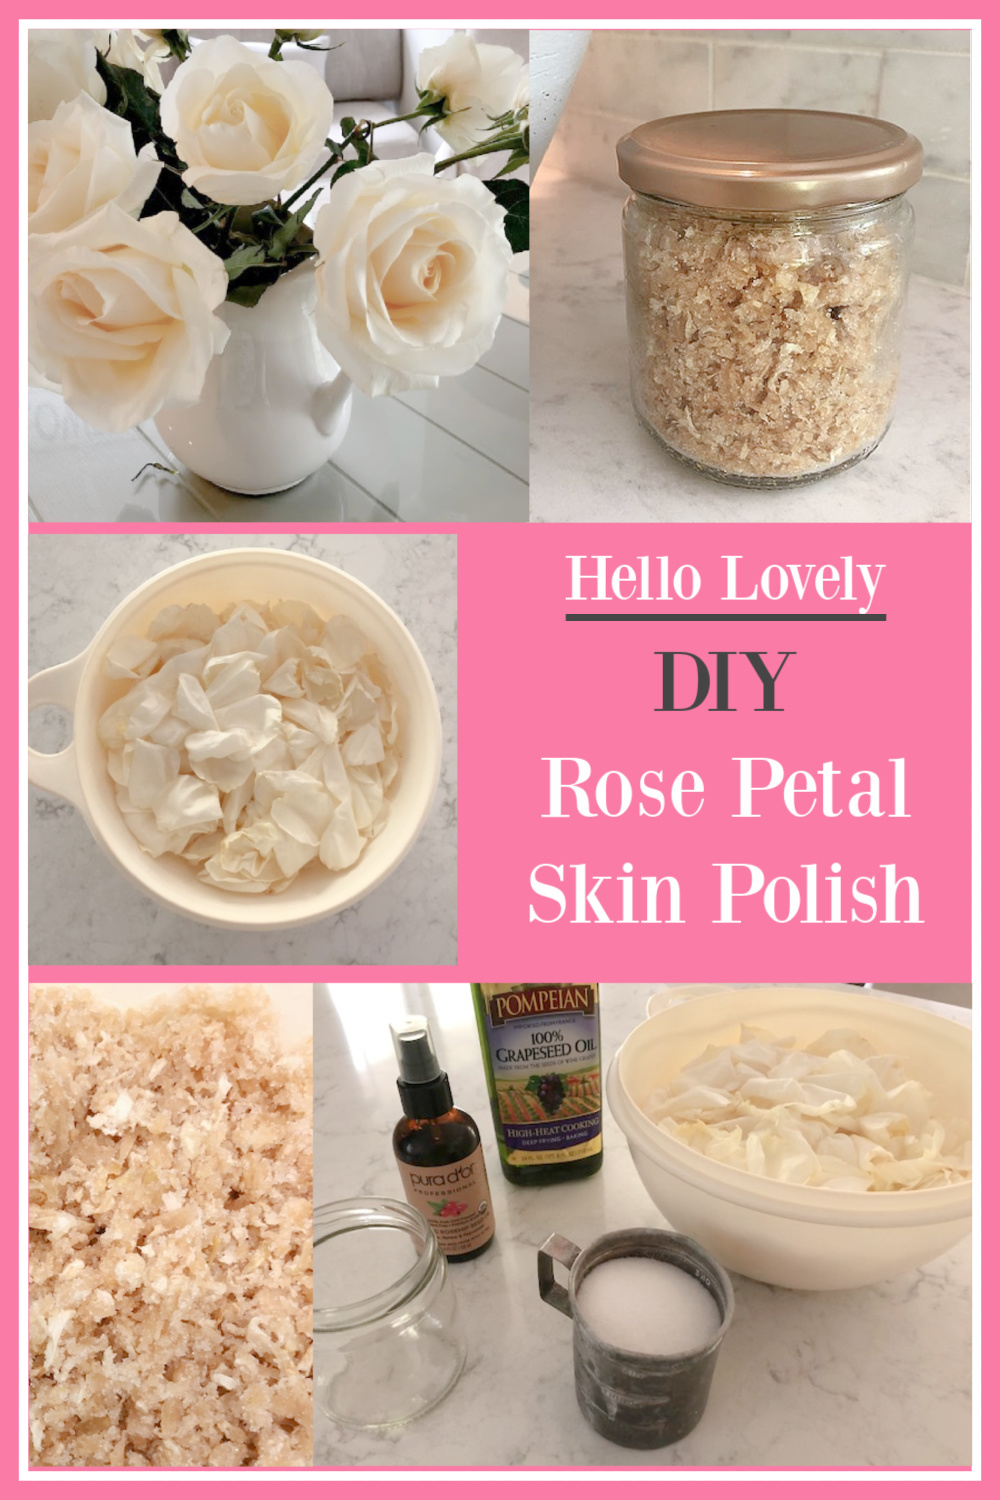 Hello Lovely DIY Rose Petal Skin Polish Recipe - come get the details for making a gentle sugar scrub with fresh rose petals. #sugarscrub #diy #rosepetals